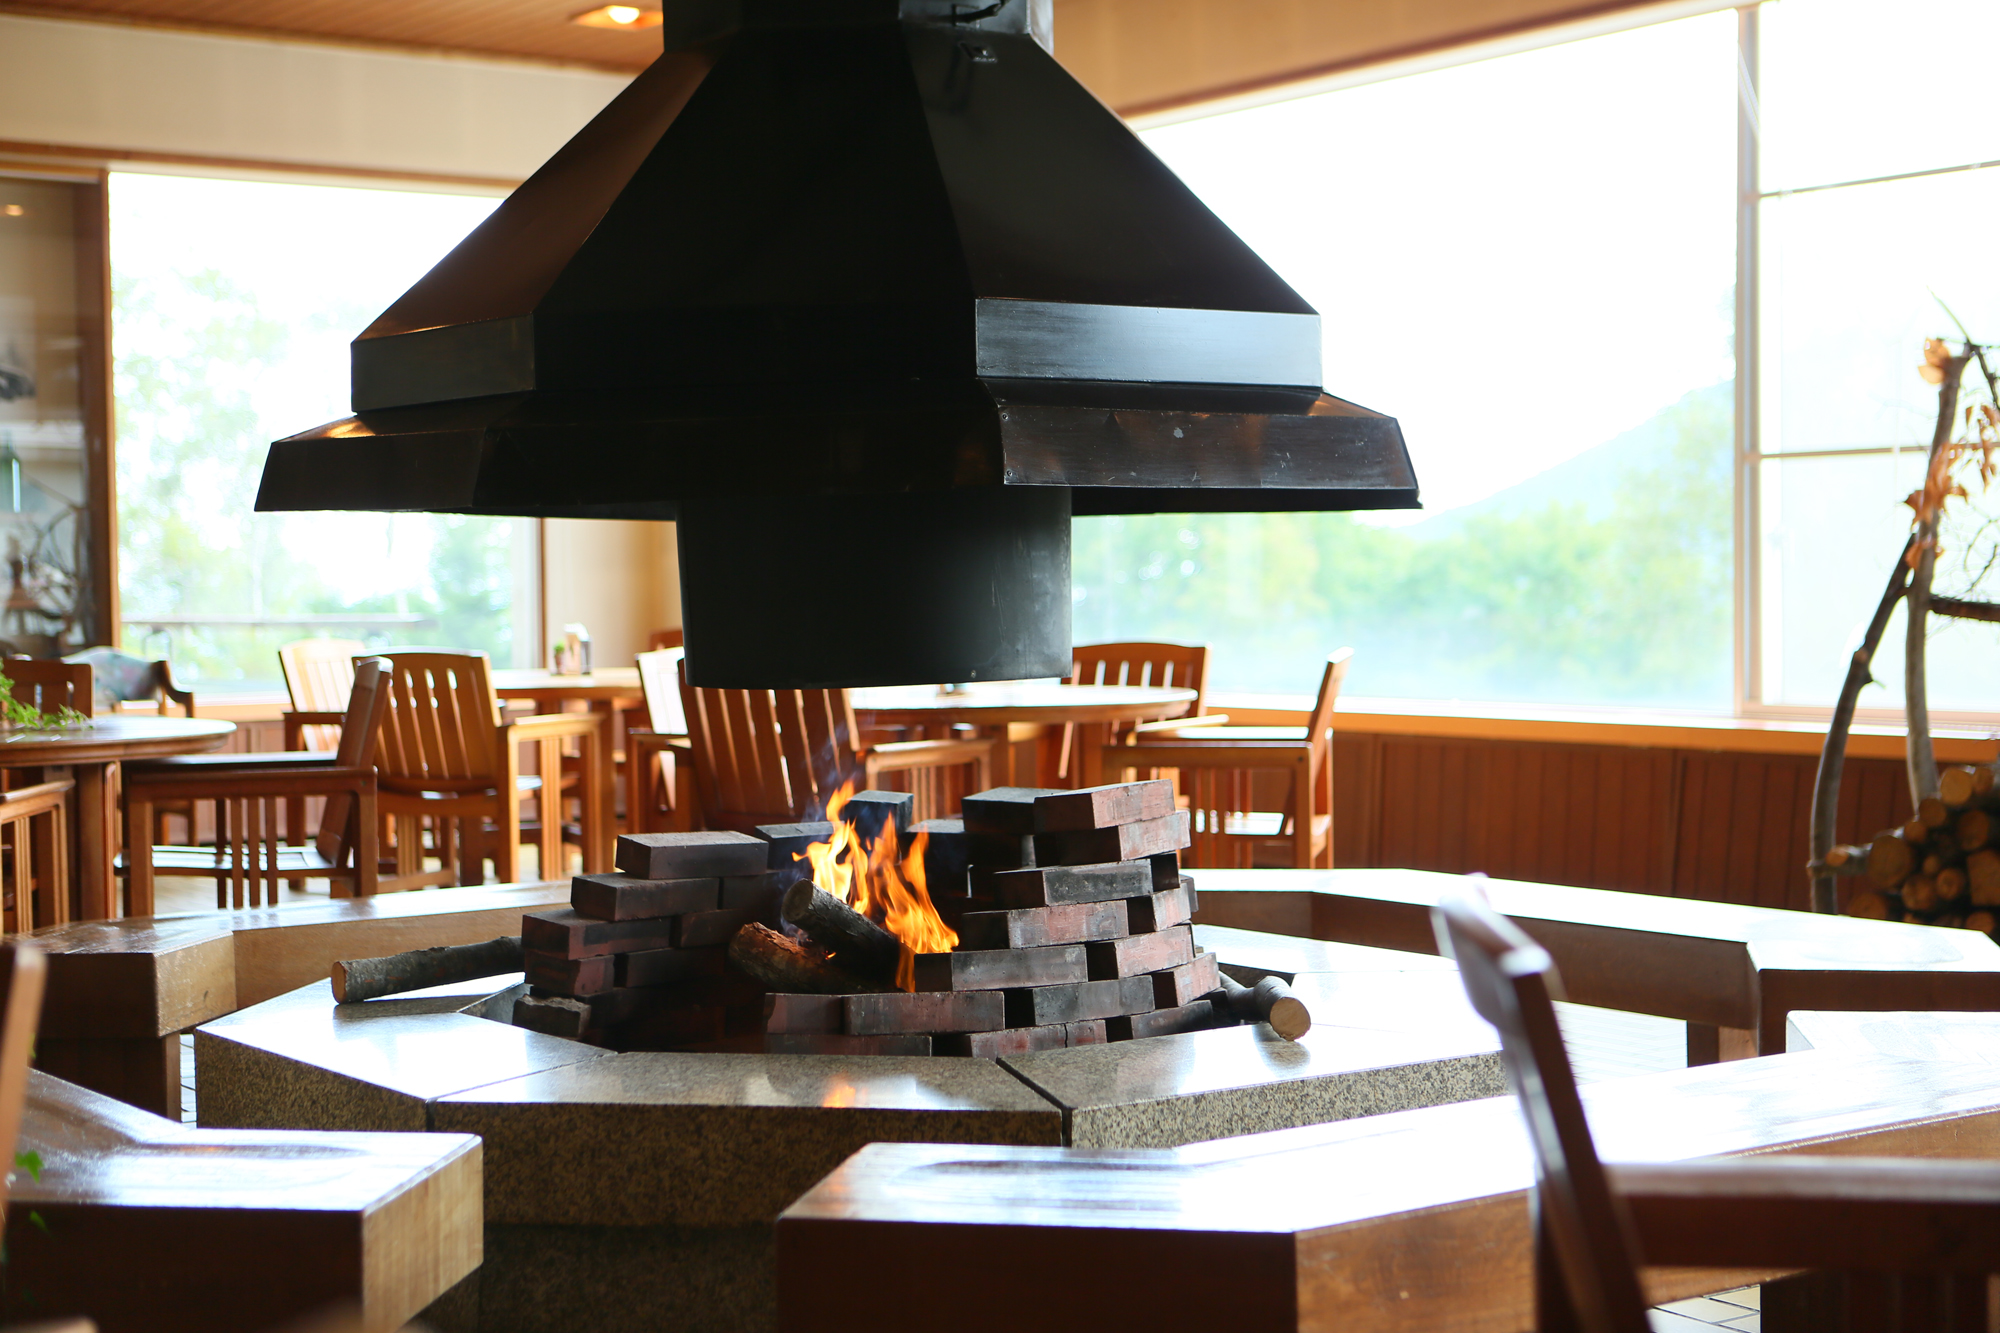 Madarao Kogen Hotel Fireplace